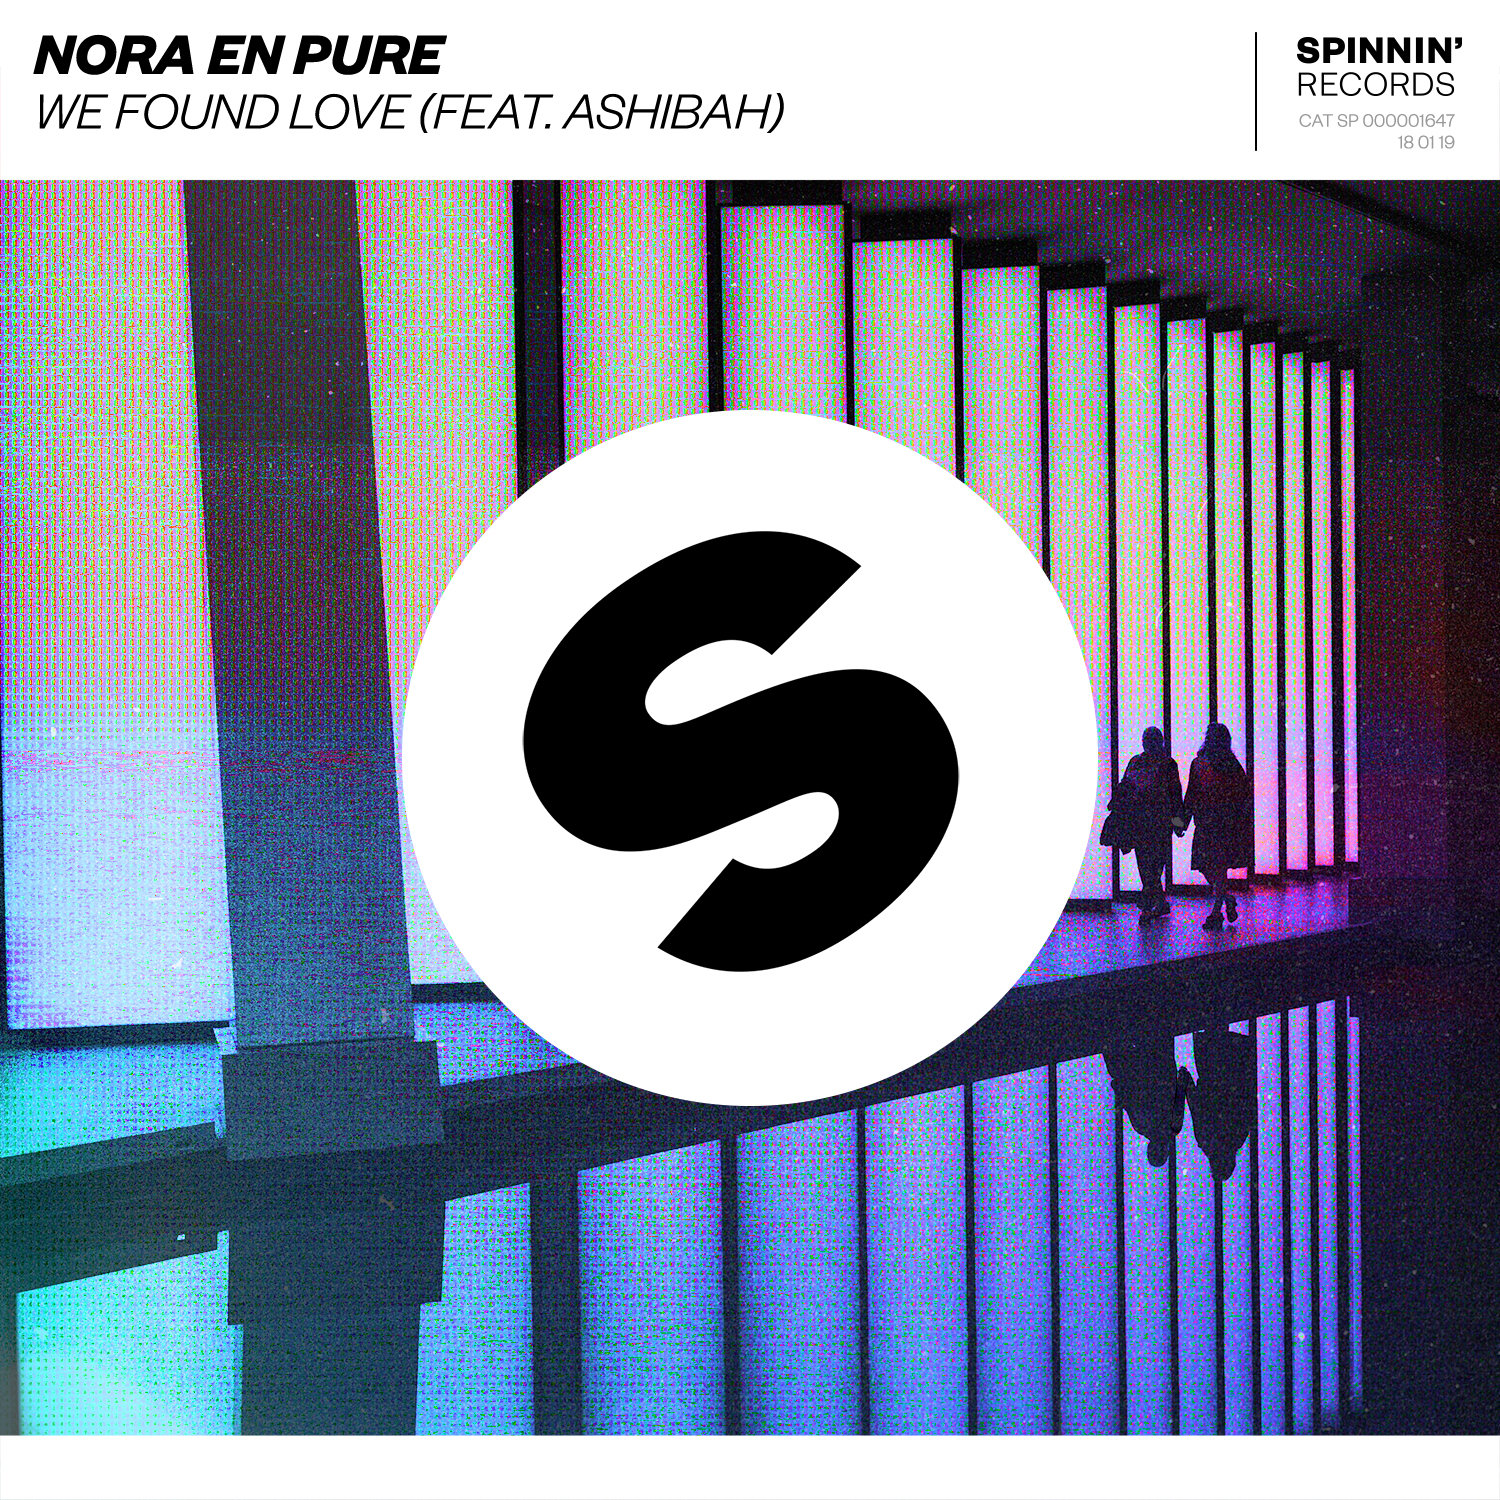 NORA EN PURE STUNS WITH 'WE FOUND LOVE' FT. ASHIBAH OUT NOW VIA SPINNIN' RECORDS